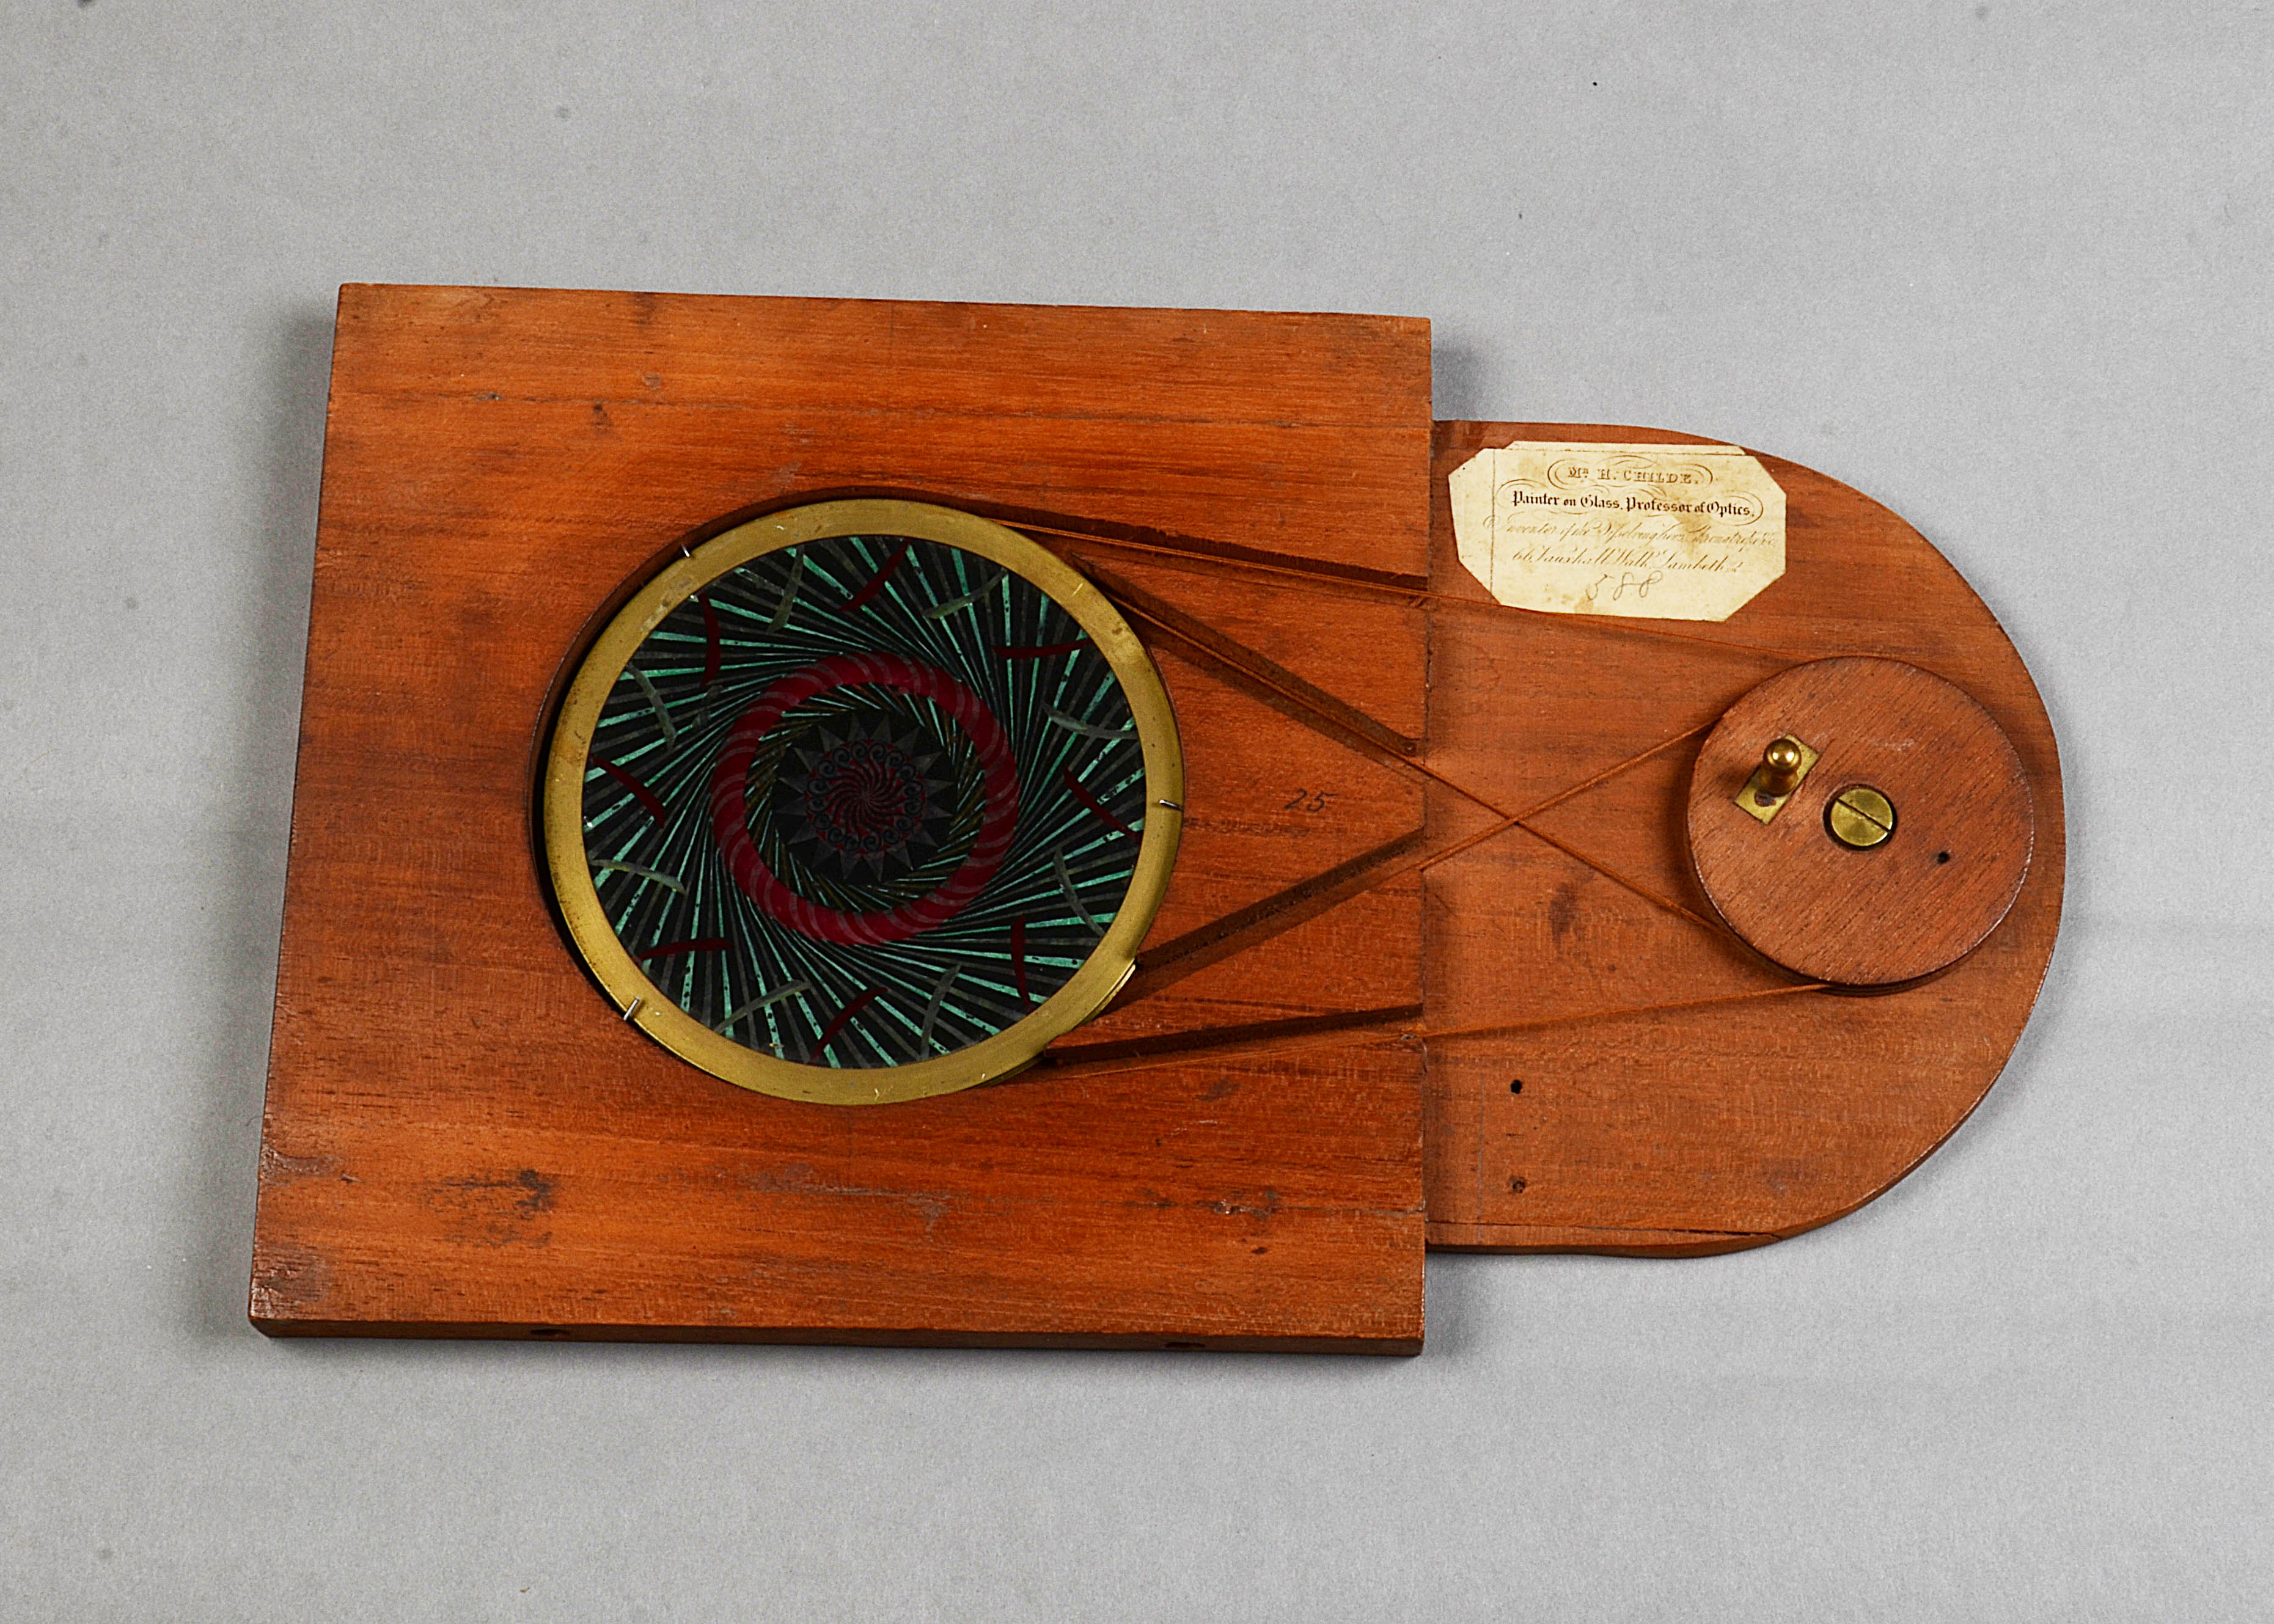 Lot 266 - A rare and large Henry Langdon Childe Mahogany-Mounted and Brass Hand-Painted Chromatrope, pair of